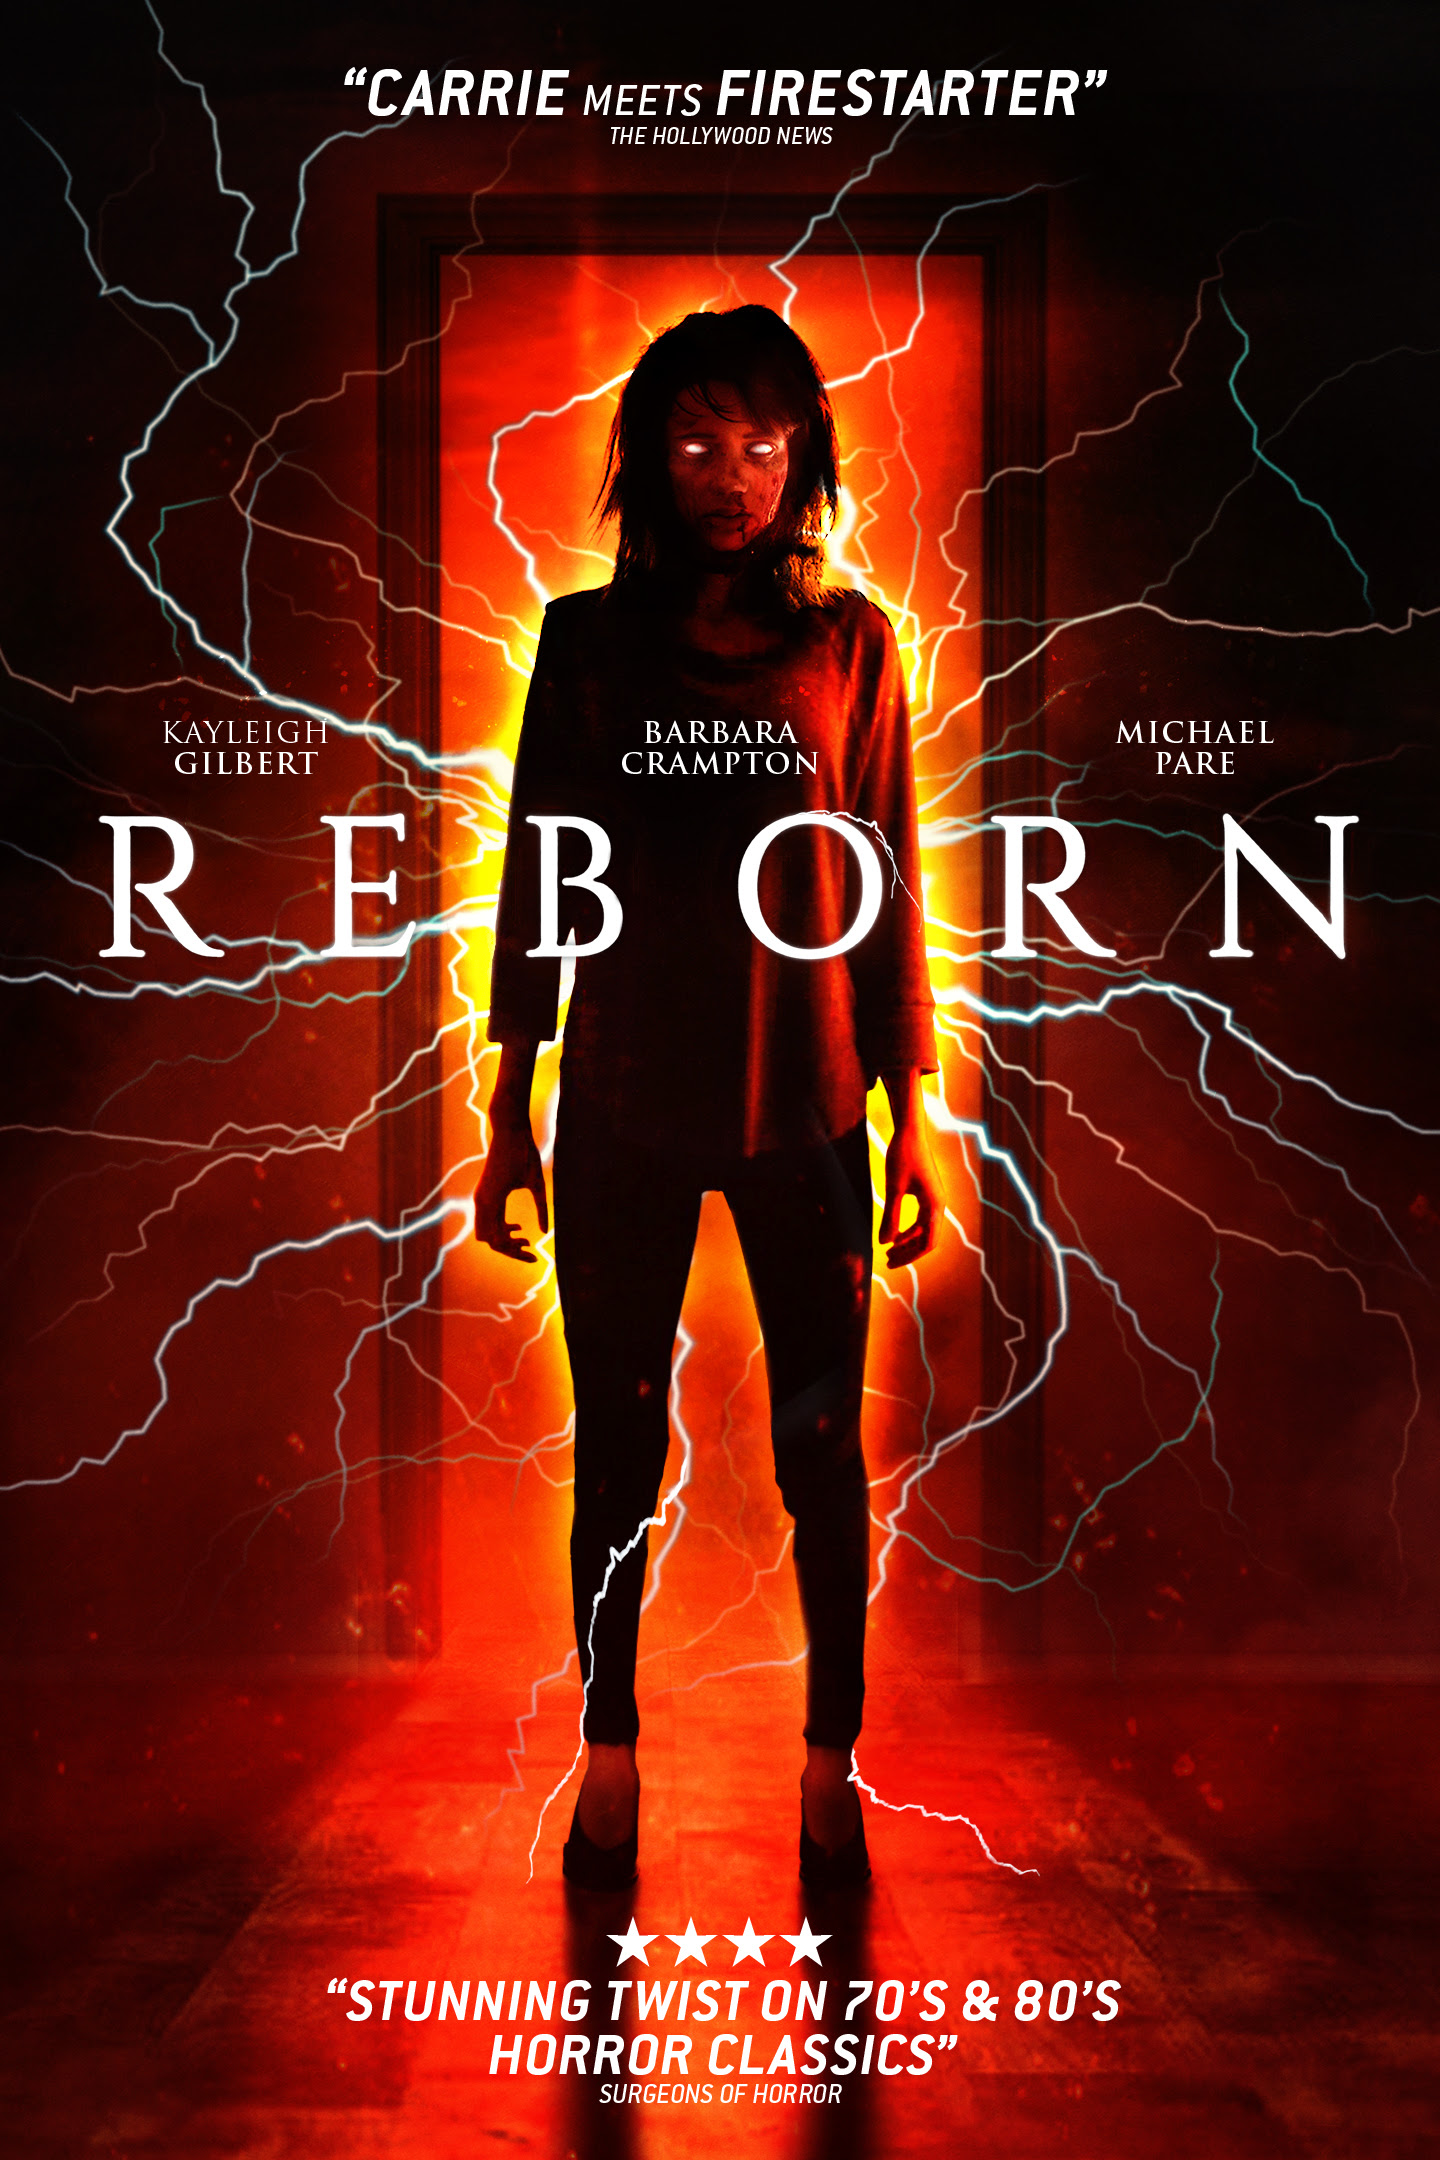 Reborn review: Spark raving mad